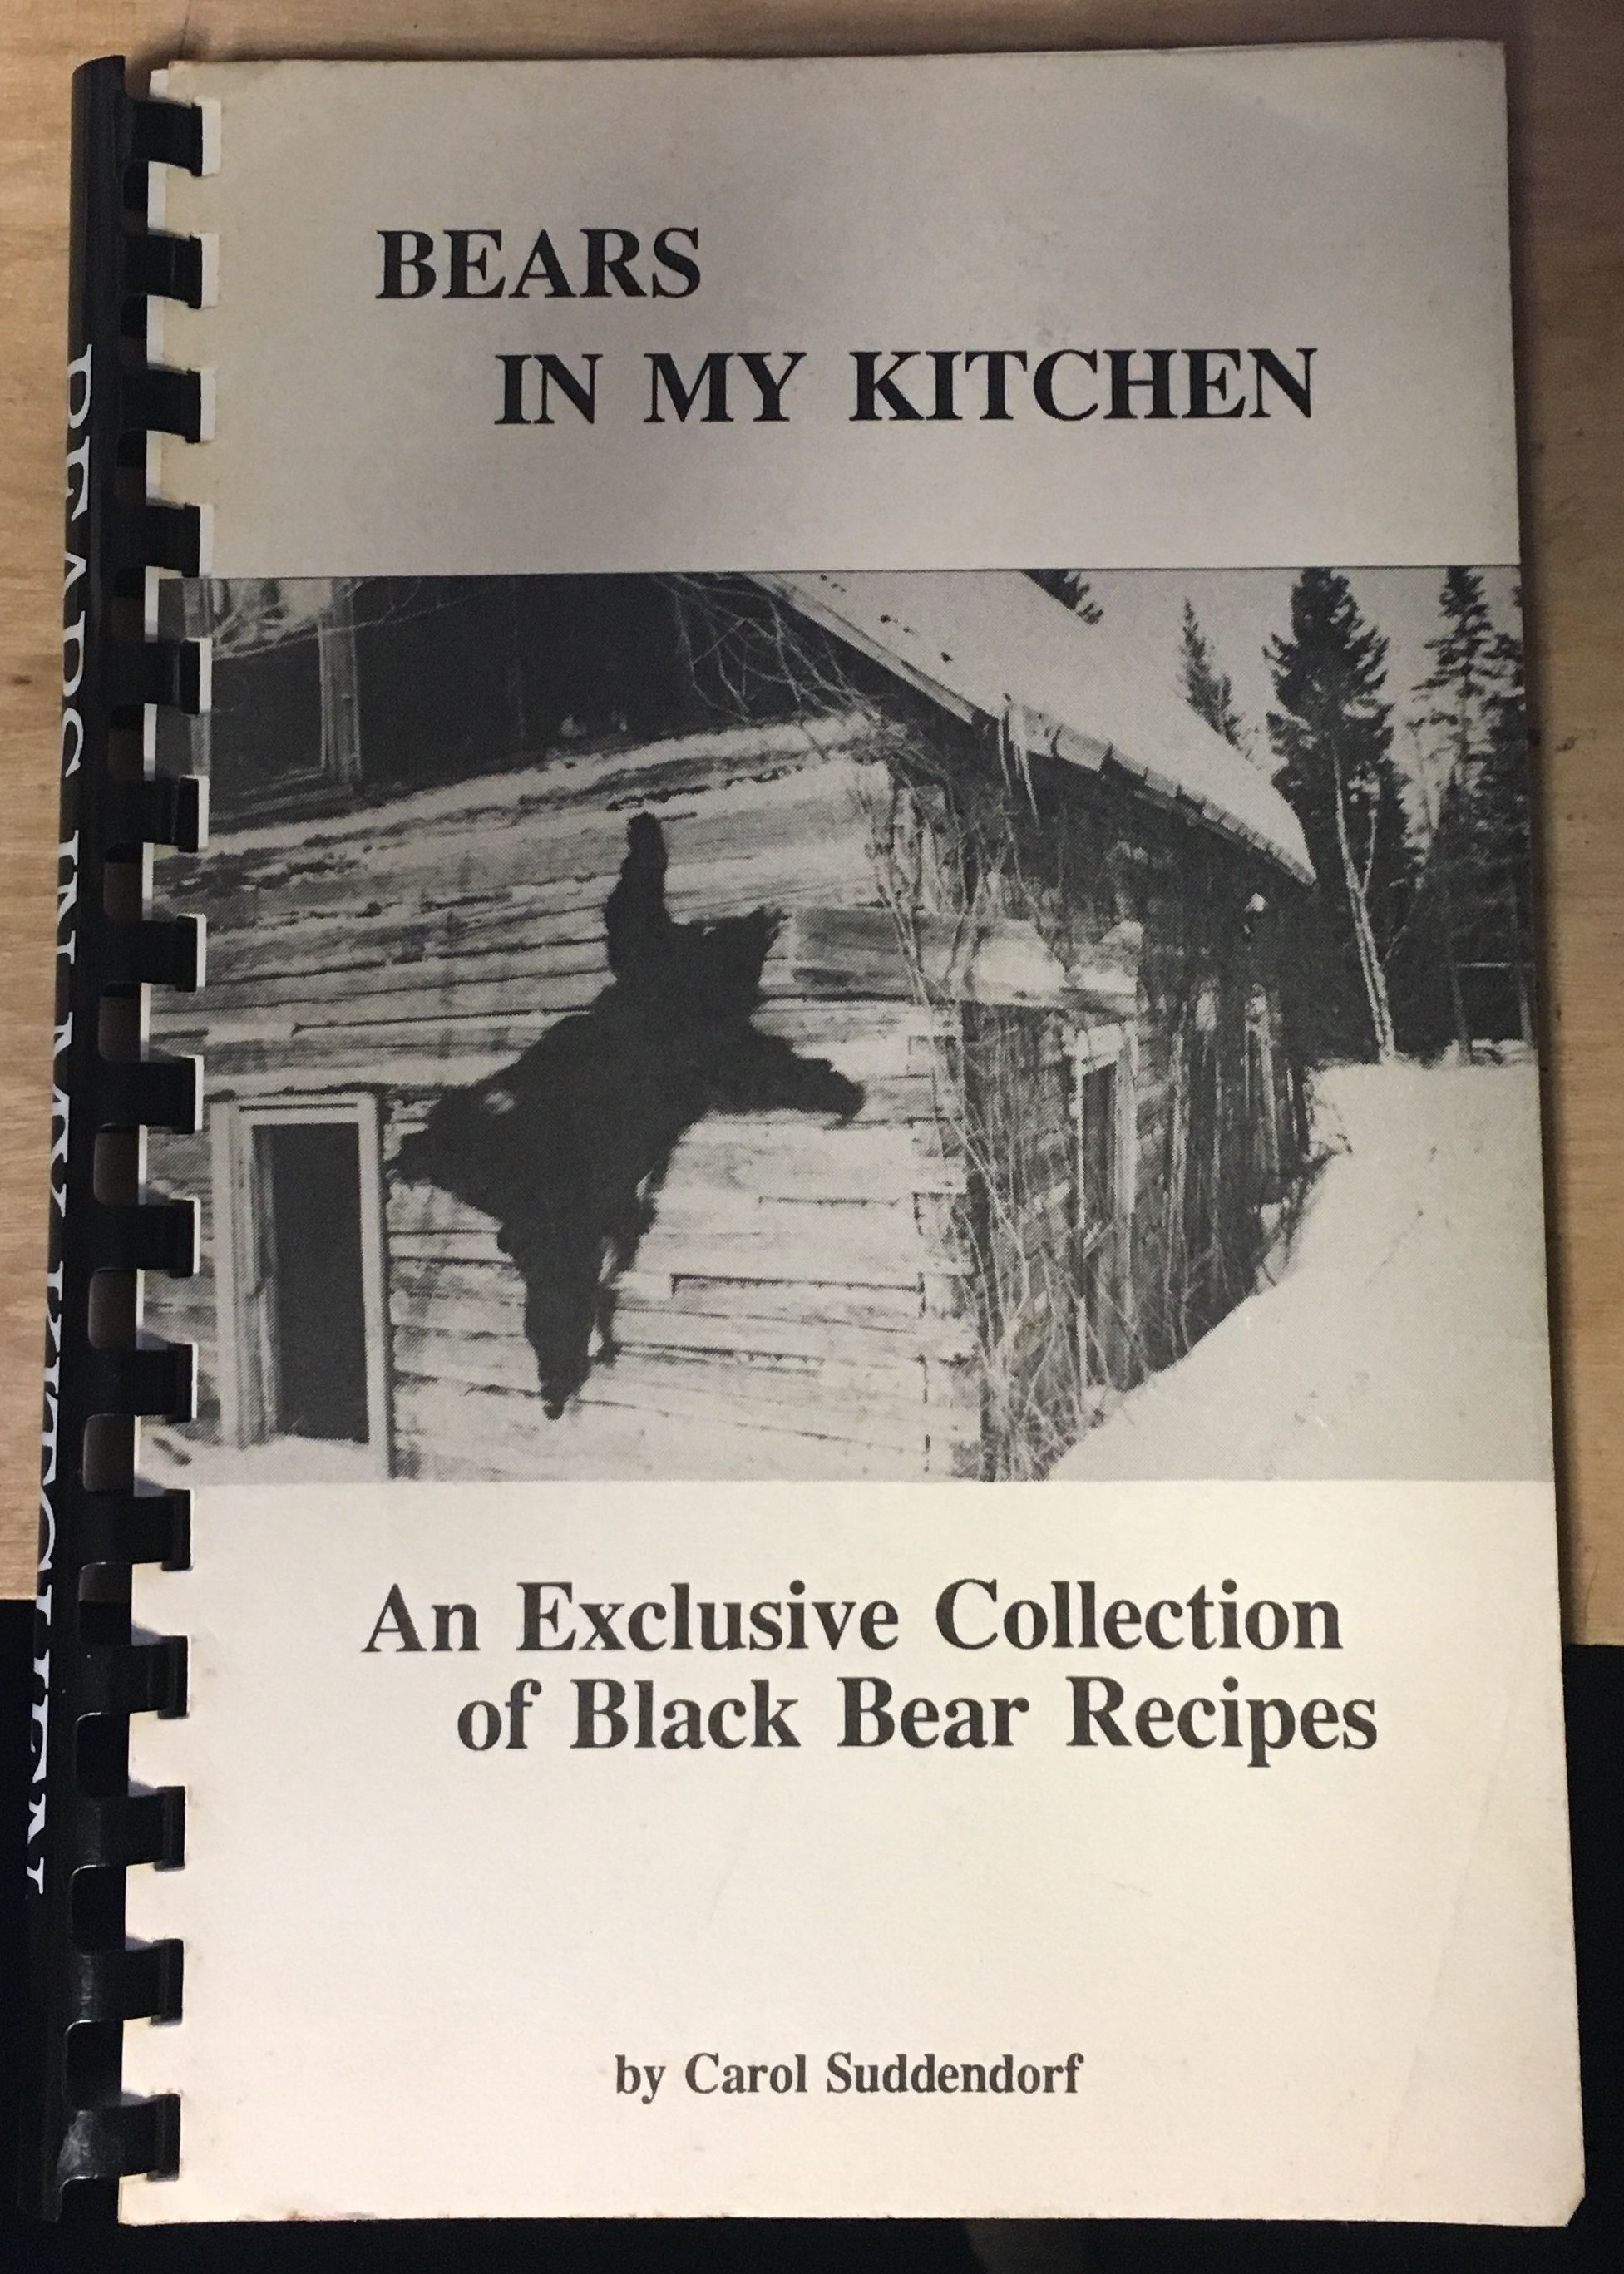 Bears in my kitchen: An exclusive collection of black bear recipes, Suddendorf, Carol